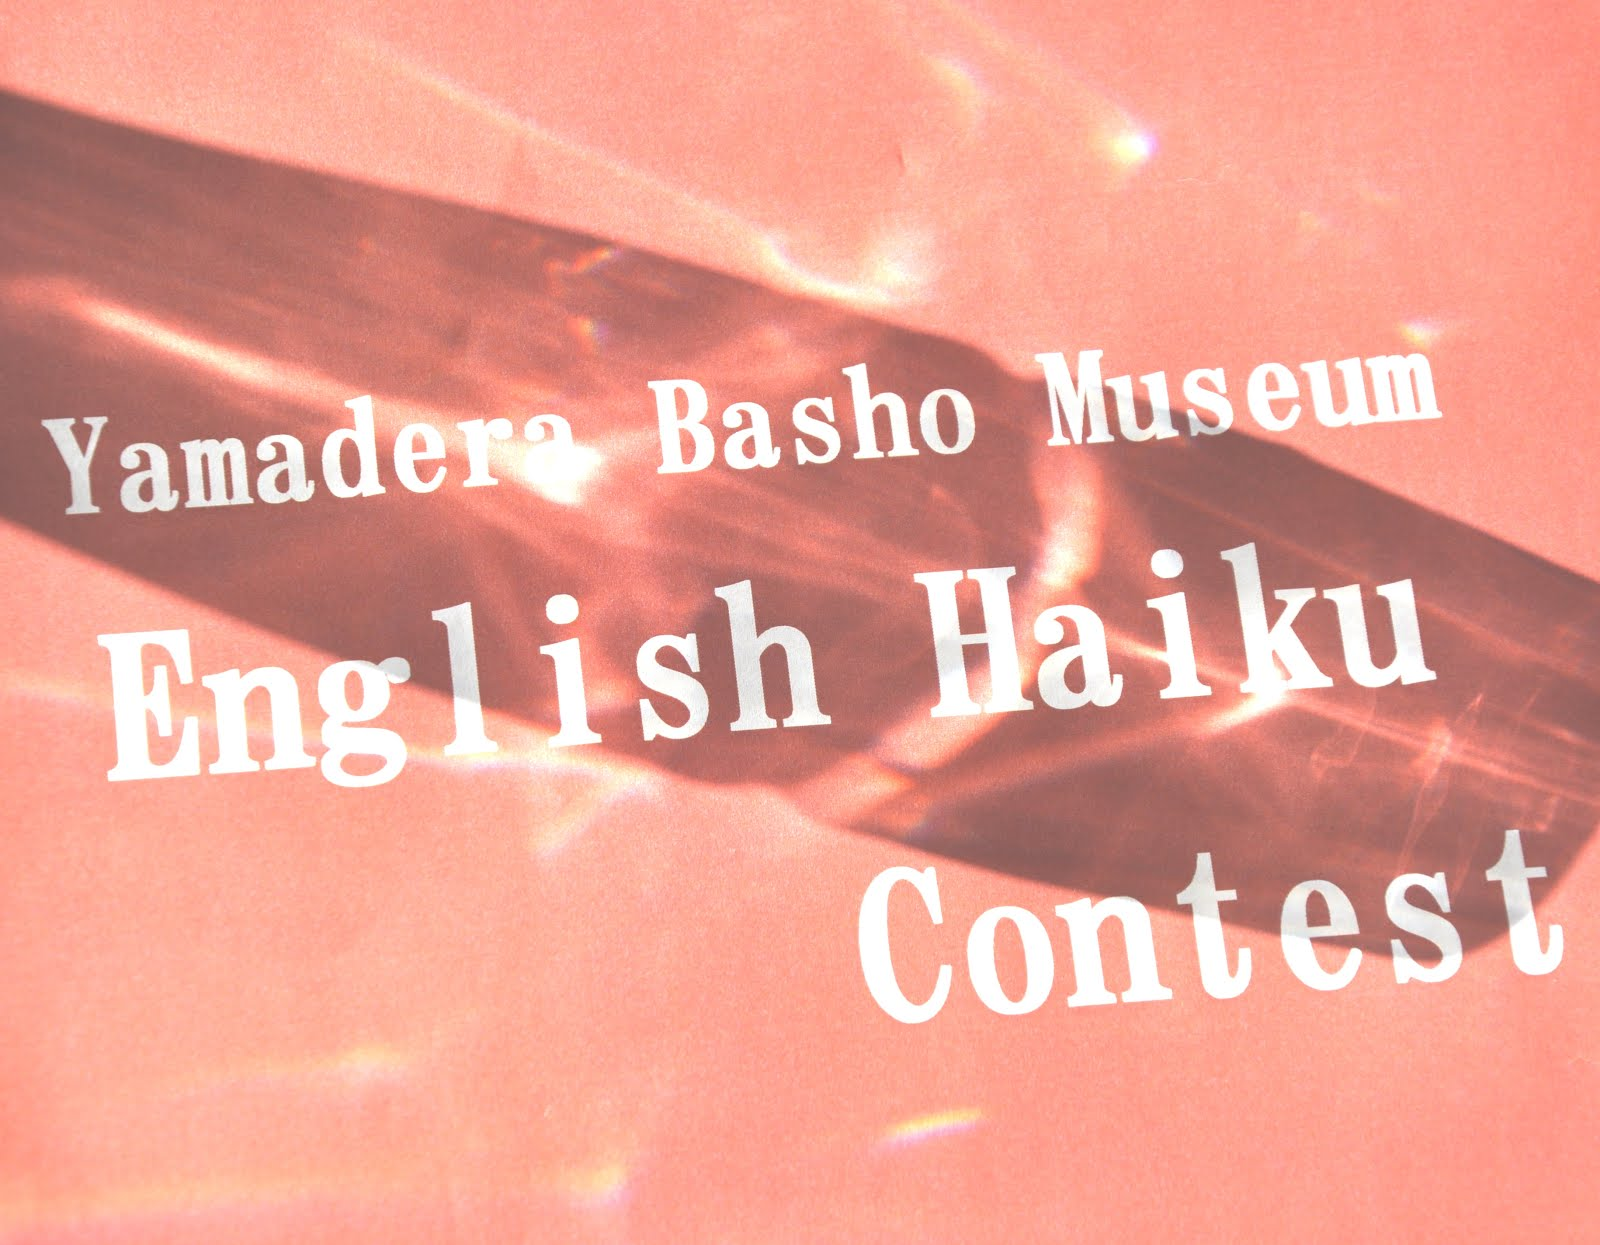 6th Yamadera Basho Museum Contest - JAPAN